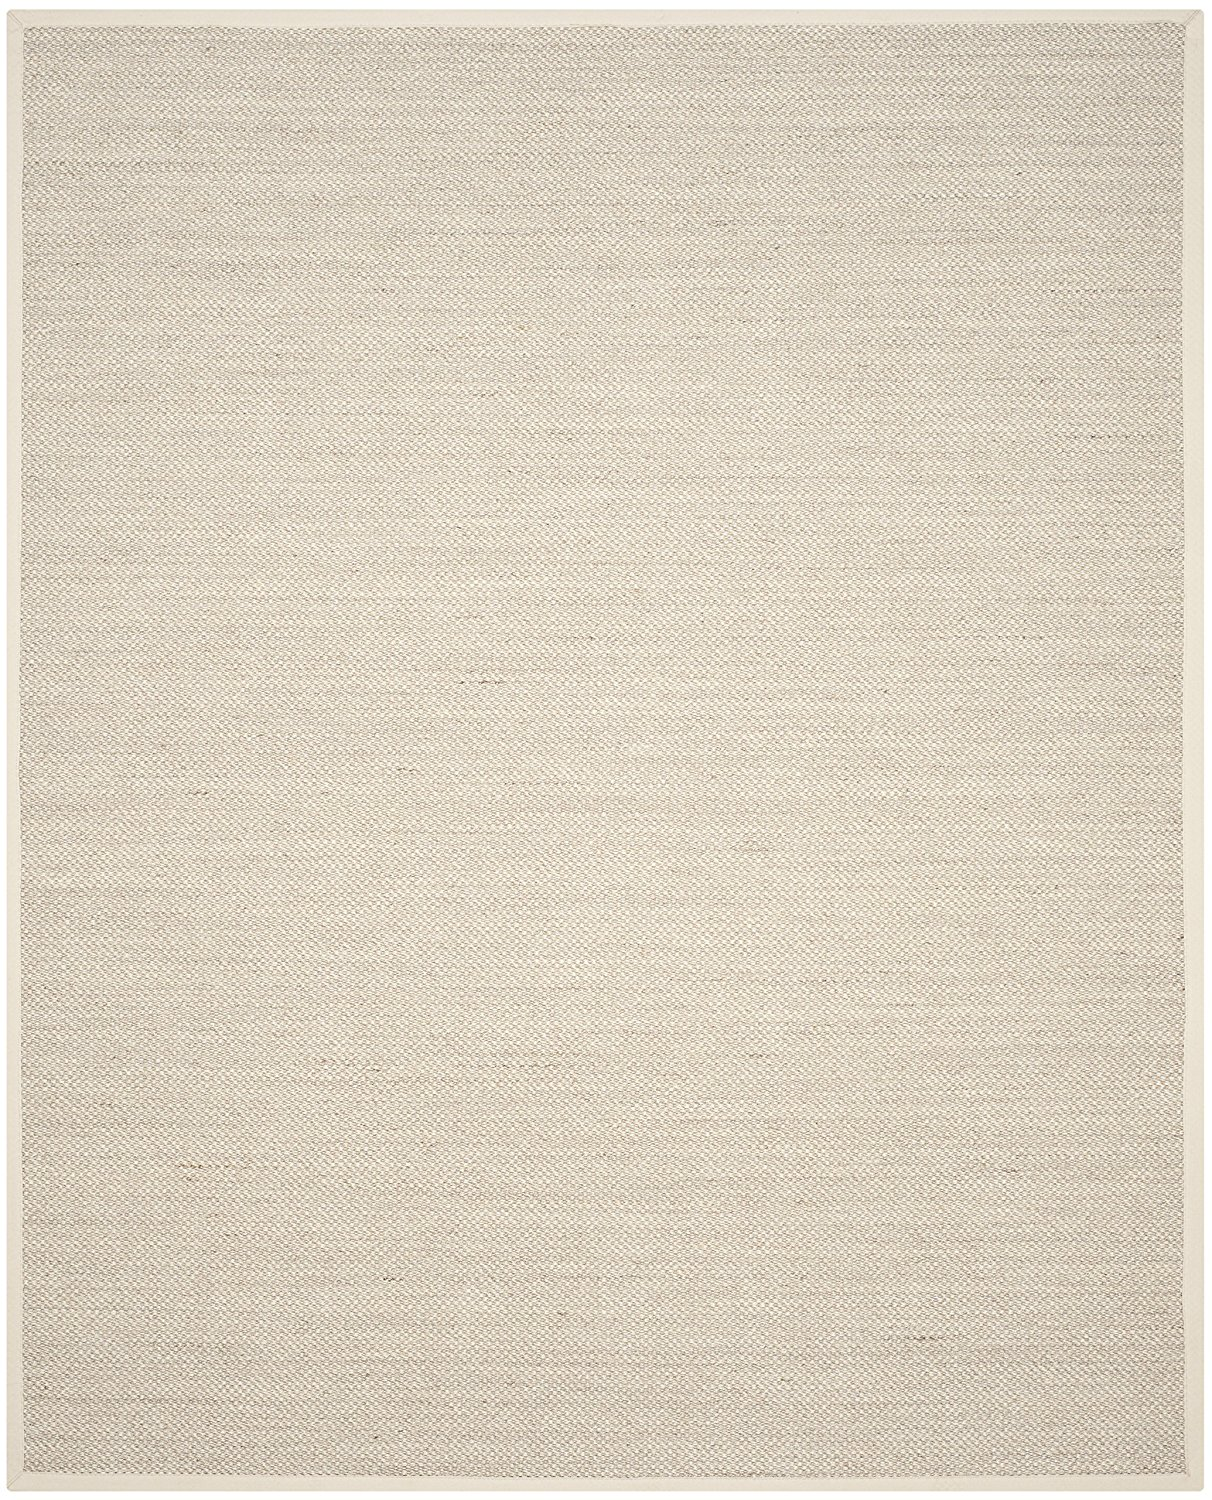 Looking for a simple rug for any spot in the house? This basic neutral is a perfect choice if you are looking for 8 x 10 area rugs.